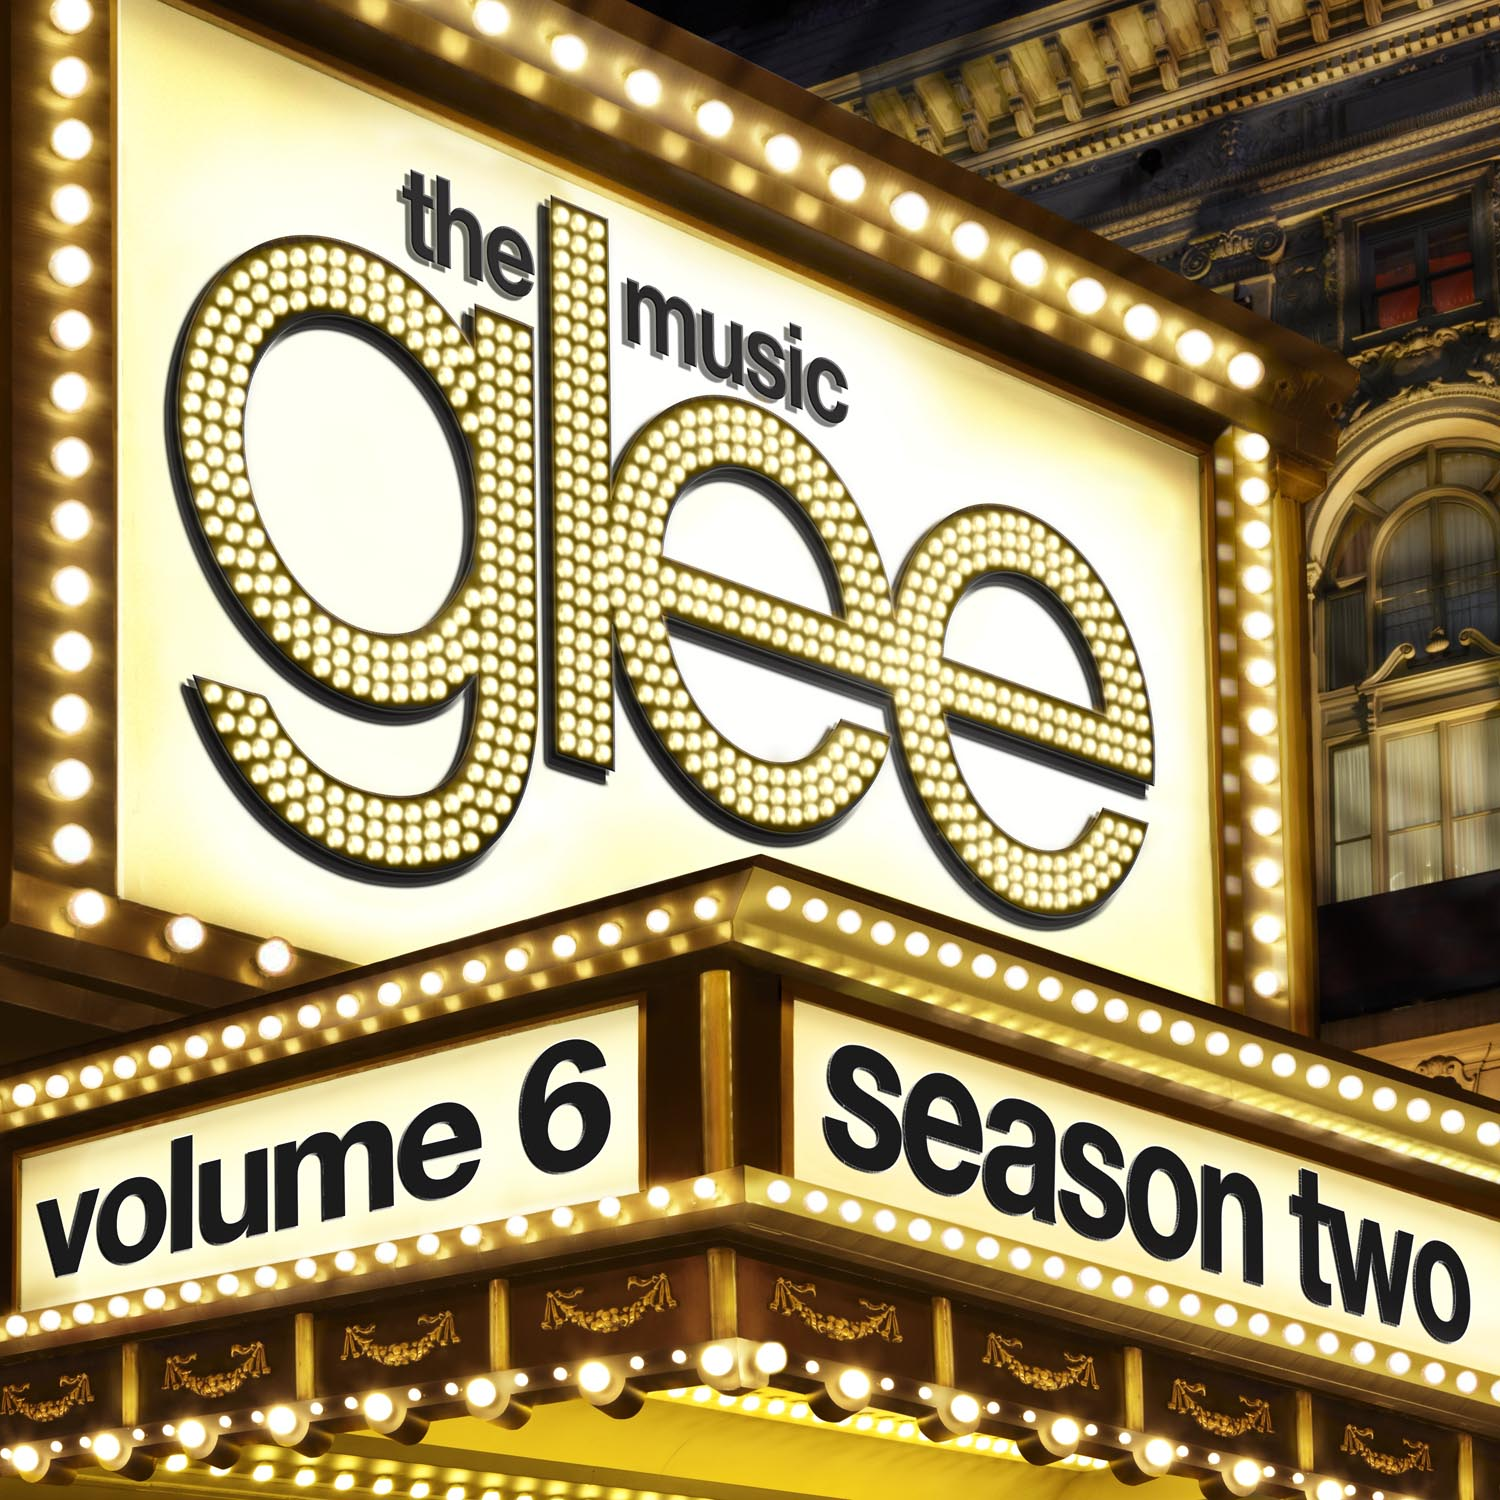 Glee Cast Dancing Queen cover art